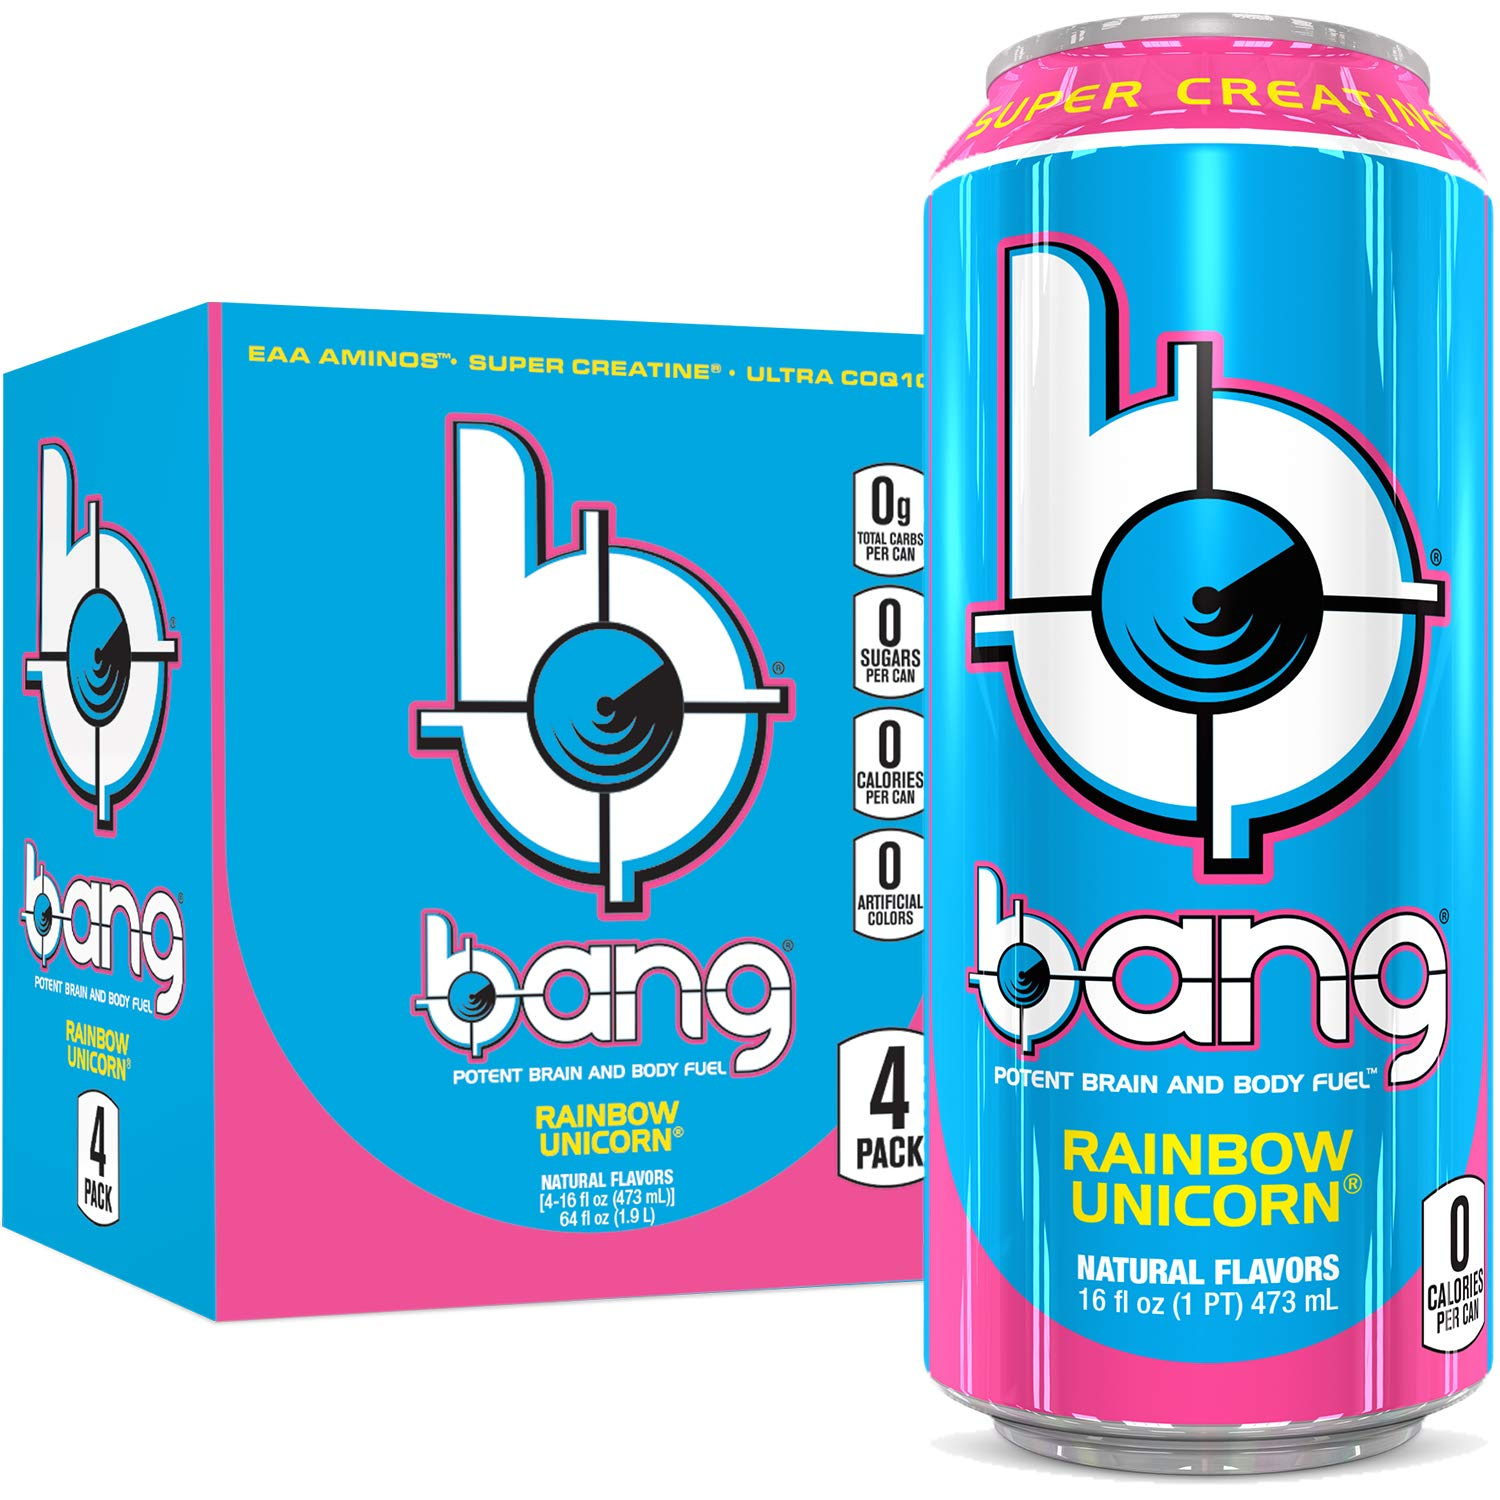 Bang Rainbow Unicorn Energy Drink, 0 Calories, Sugar Free with Super Creatine, 16oz, 4 Count